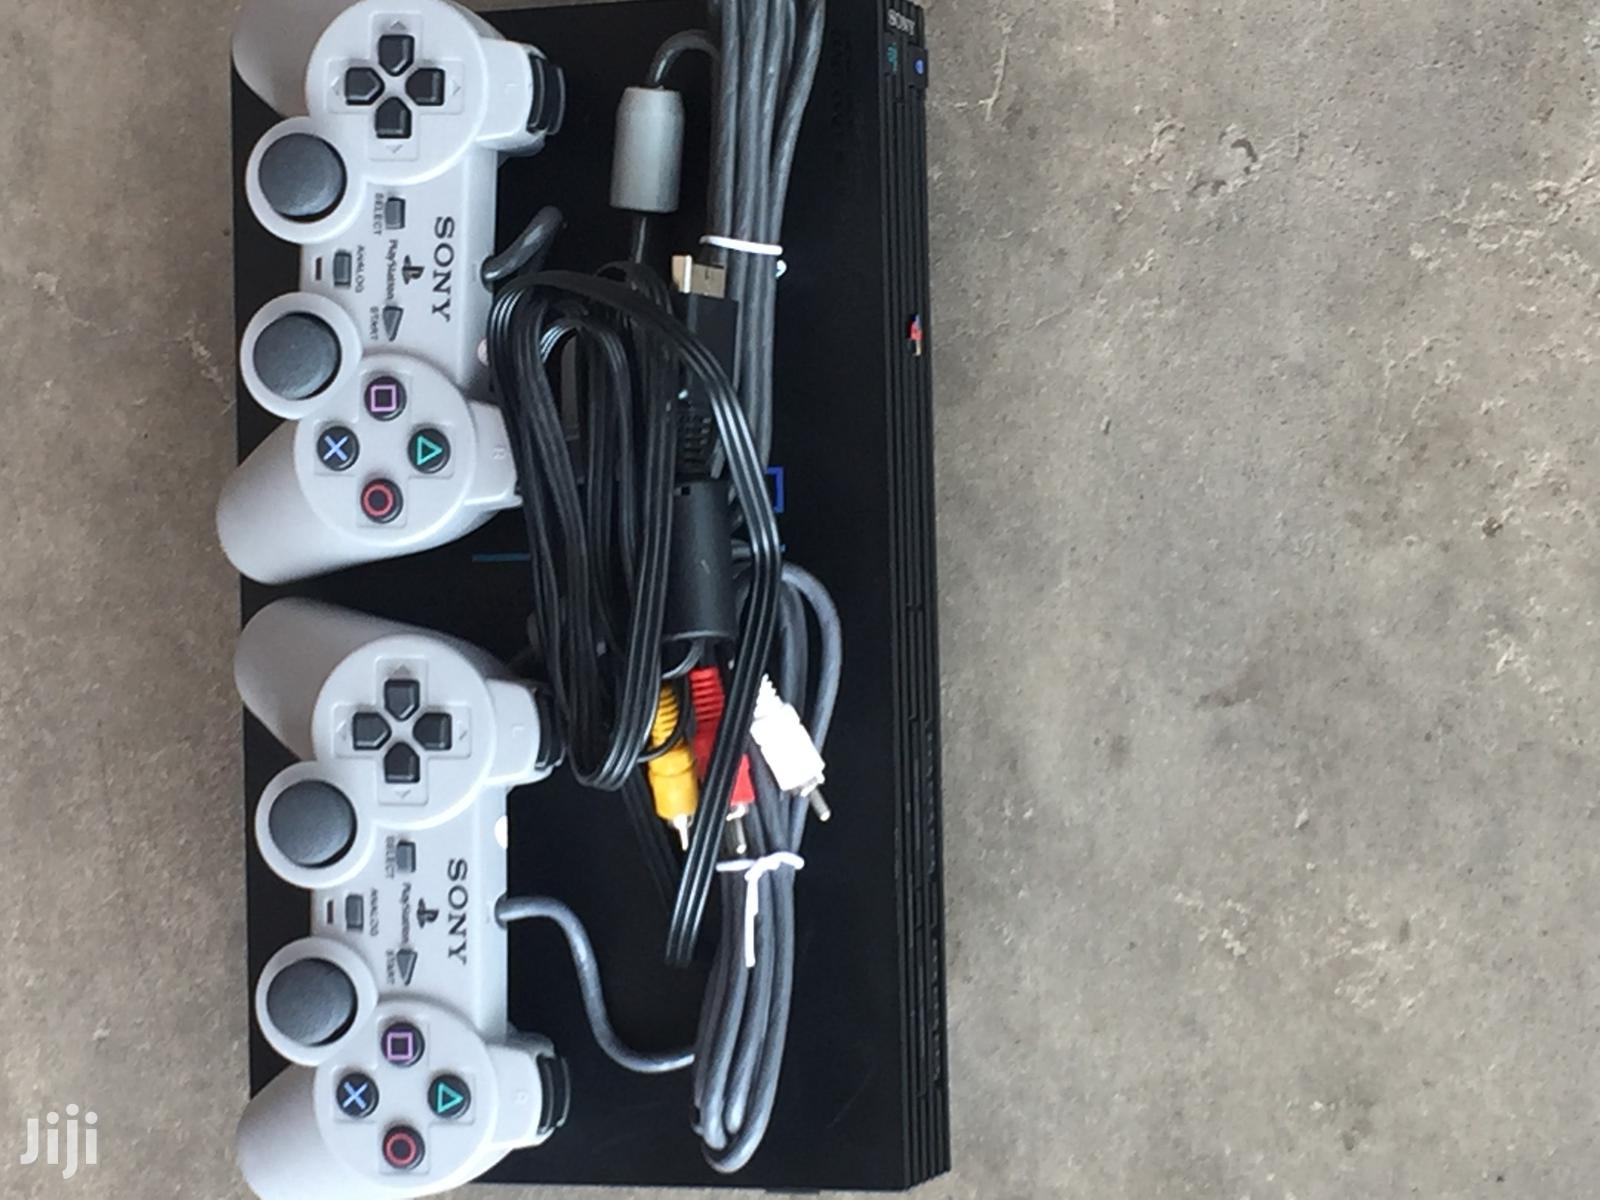 Fresh Ps2 Loaded With Games